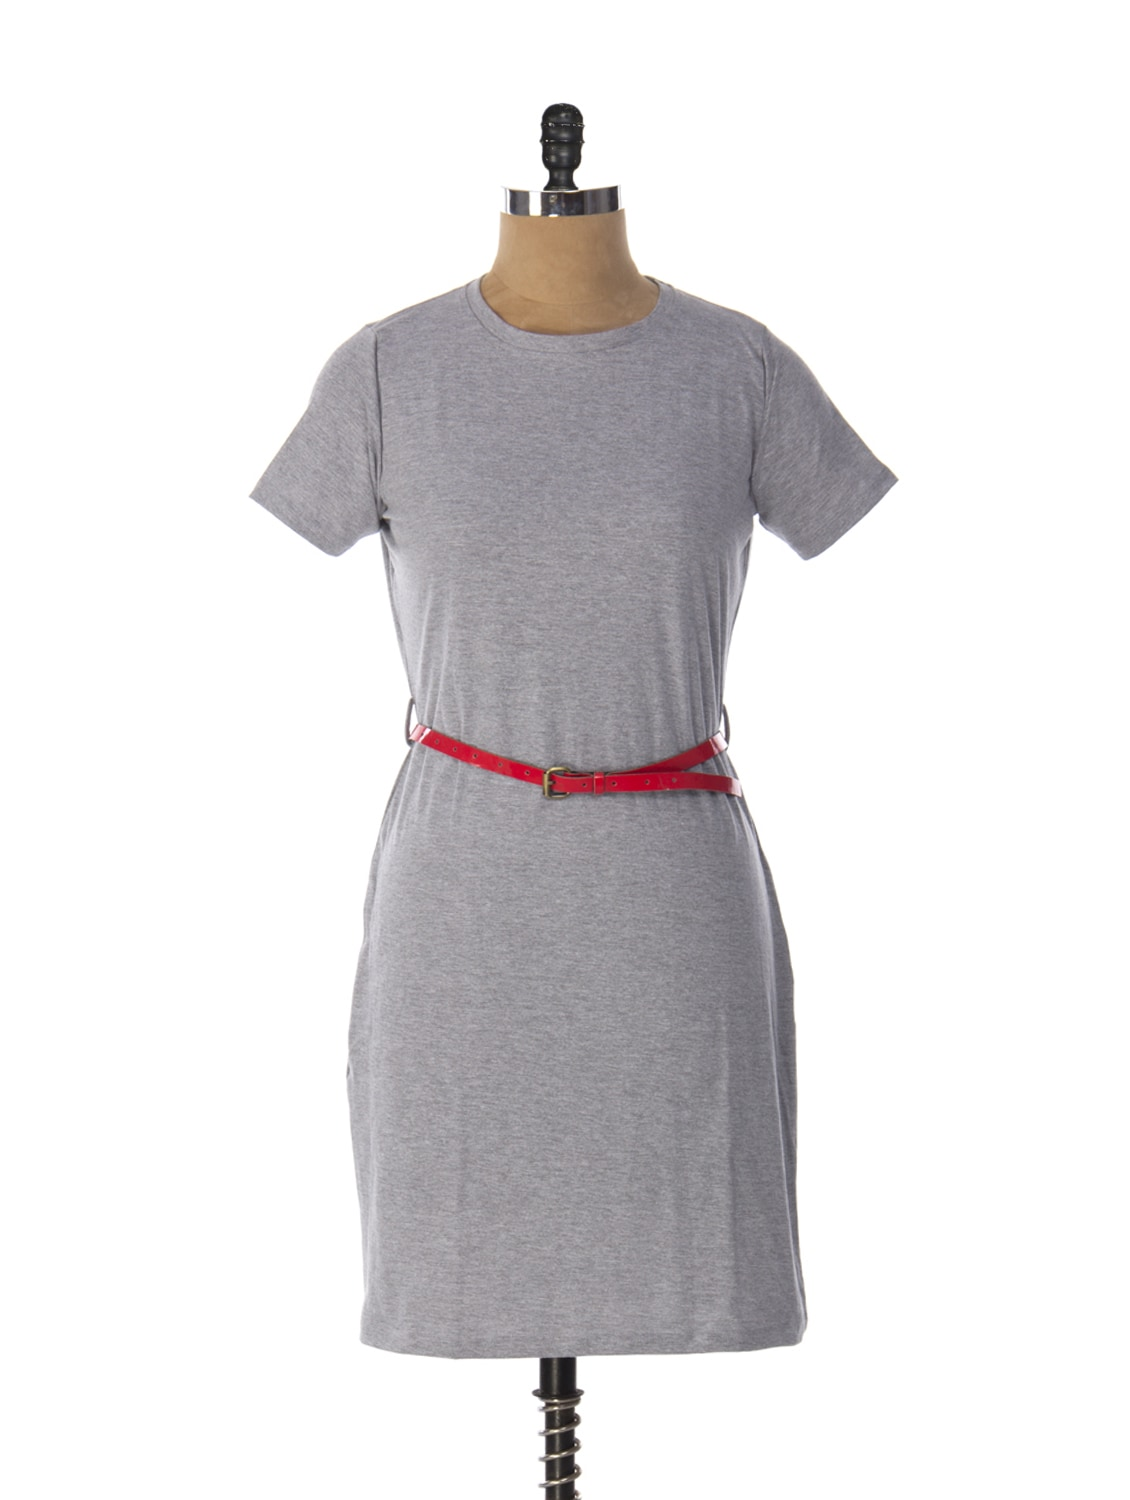 T-shirt Style Grey Midi Dress - Miss Chase